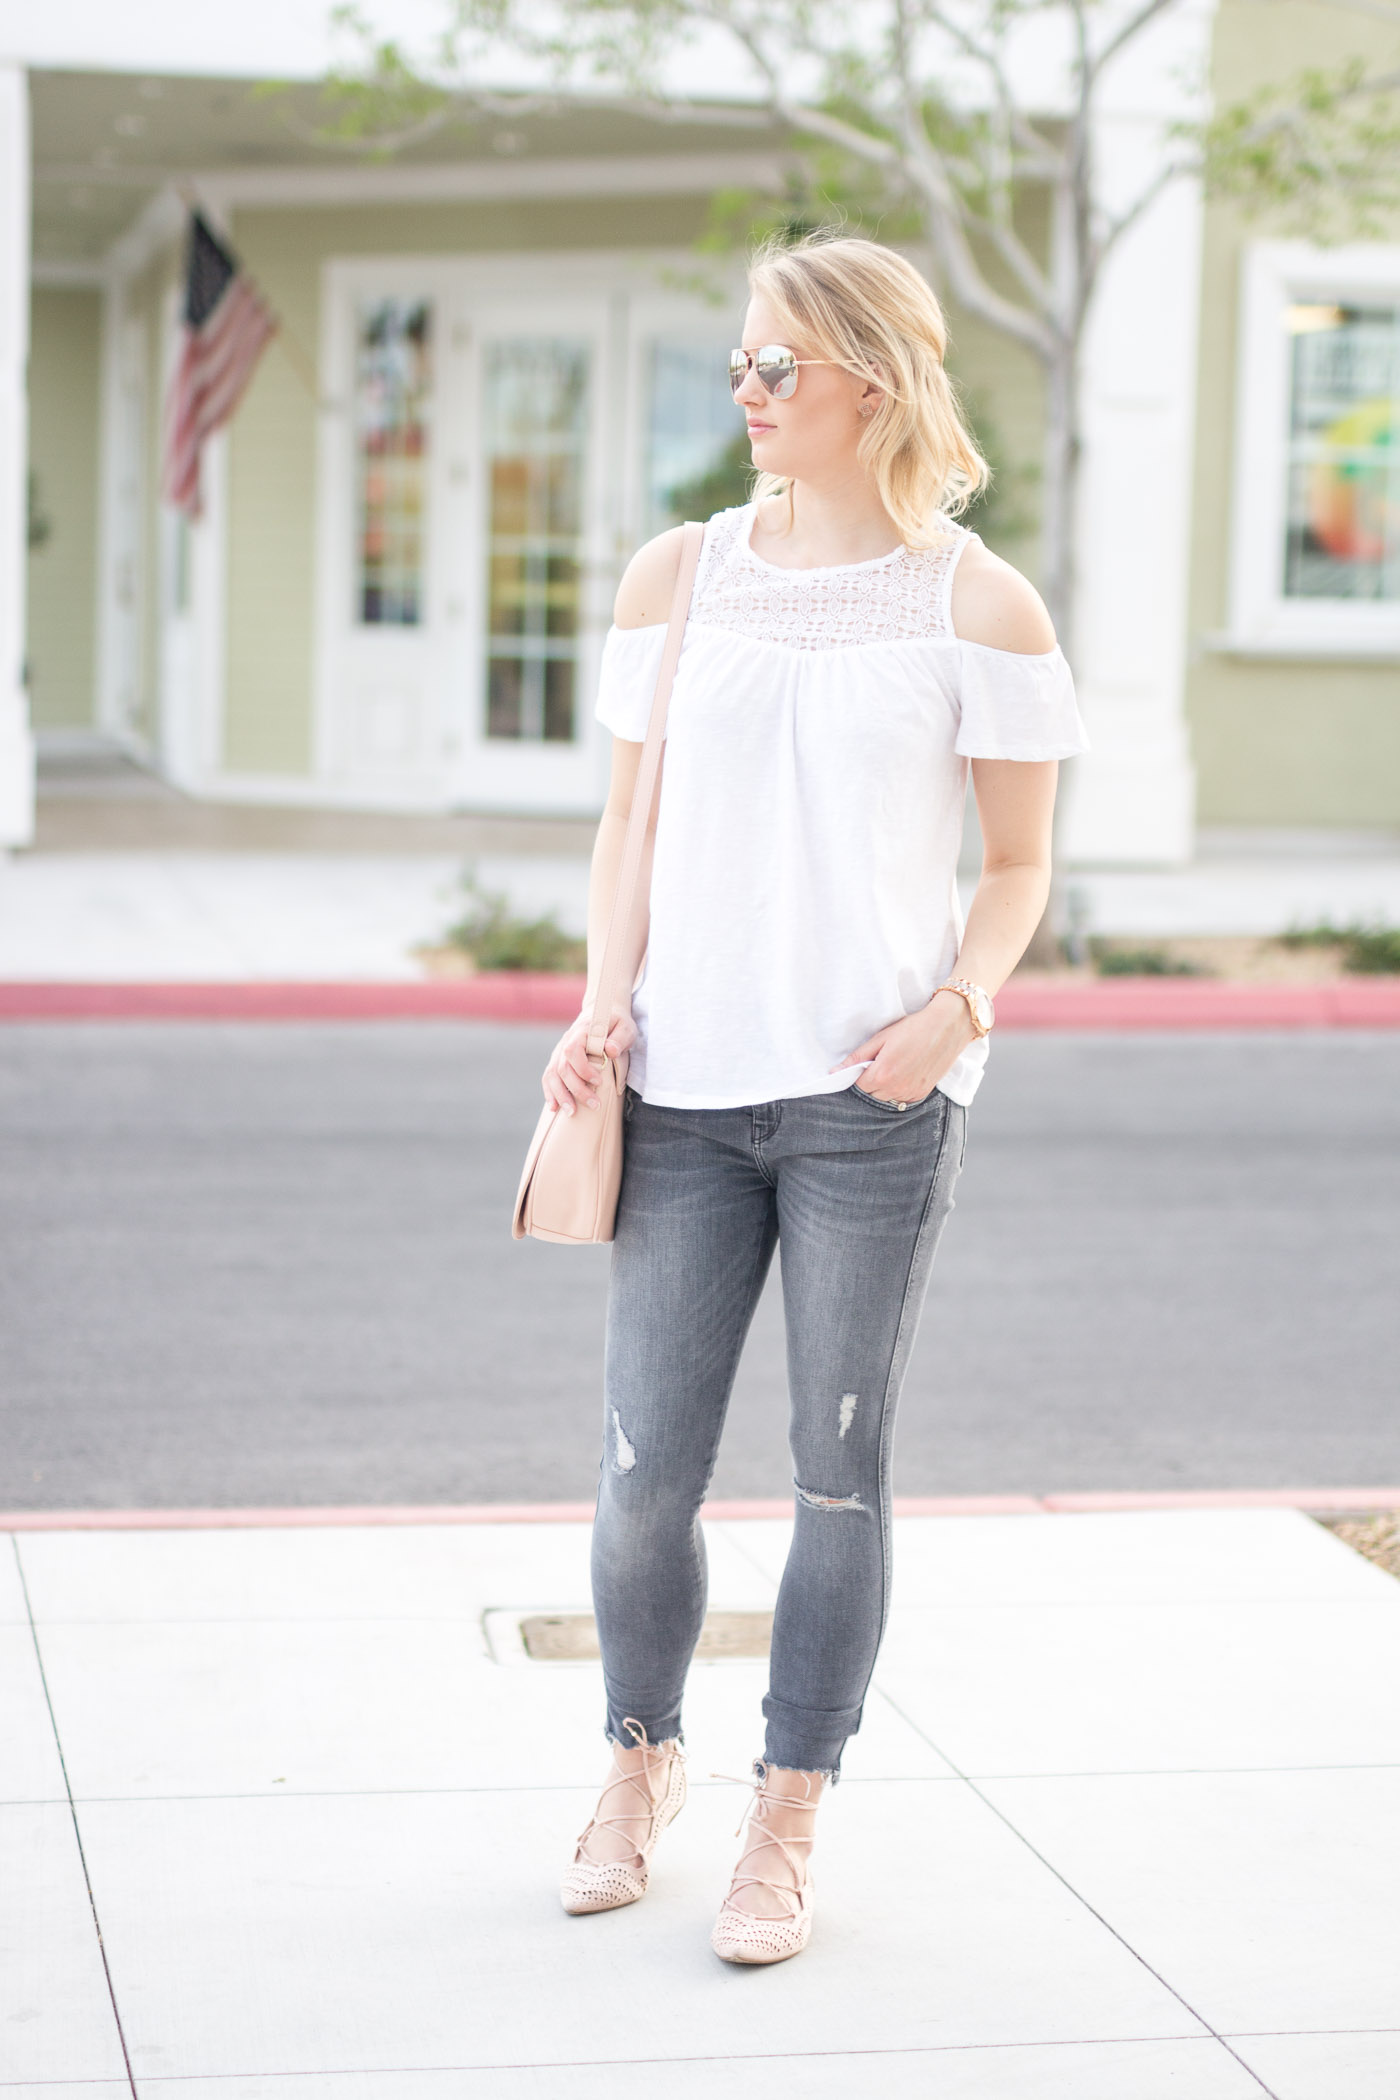 34750cdd1642b4 What To Wear With Grey Jeans For Spring - Treats and Trends